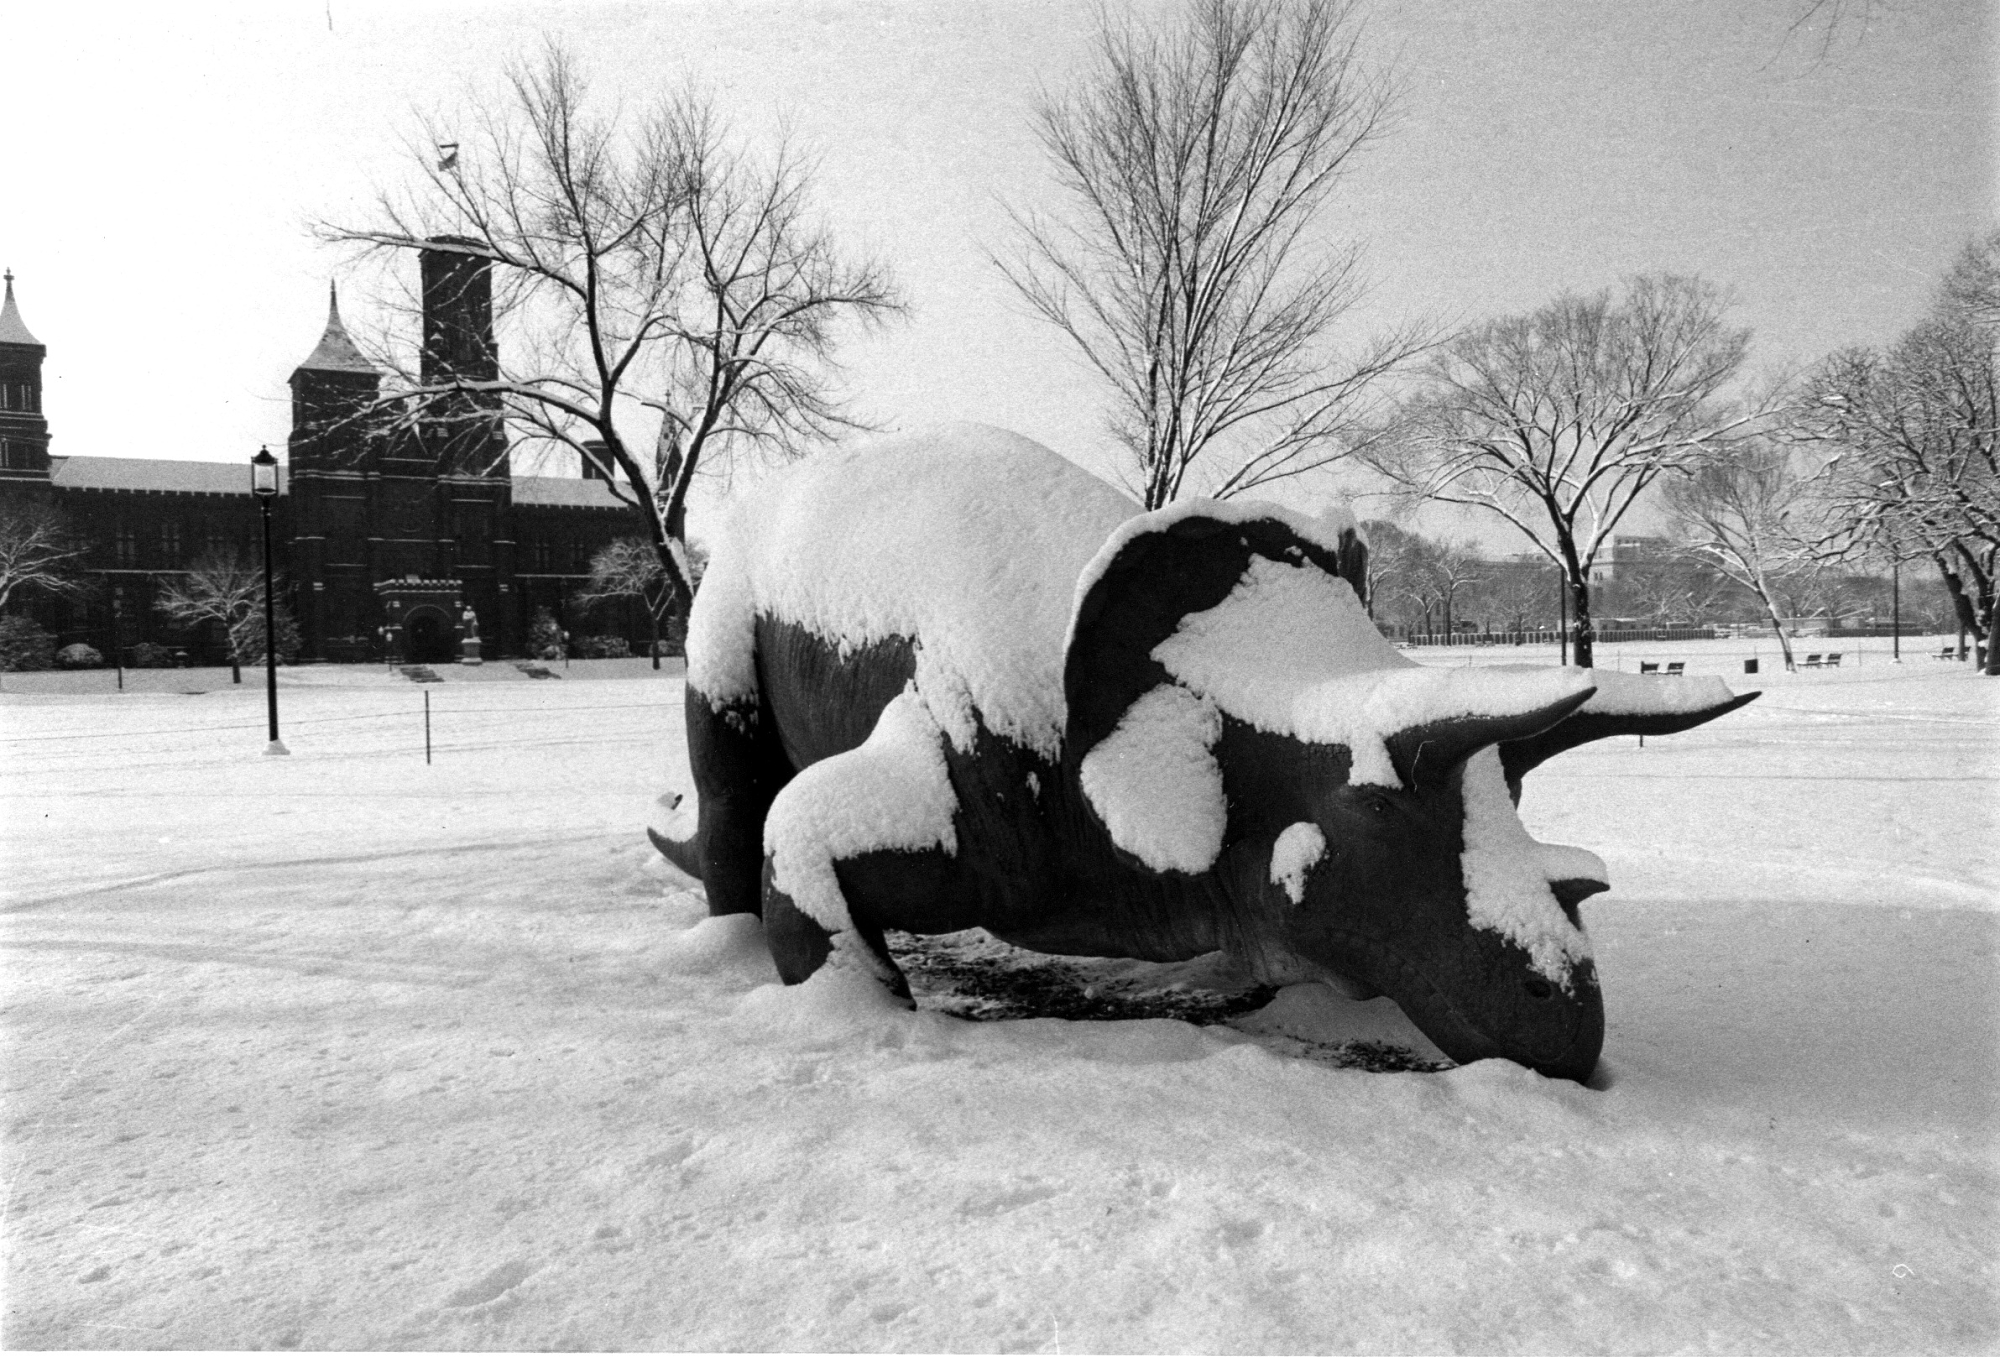 The Smithsonian's dinosaur statute Uncle Beazley covered in snow, 1977.